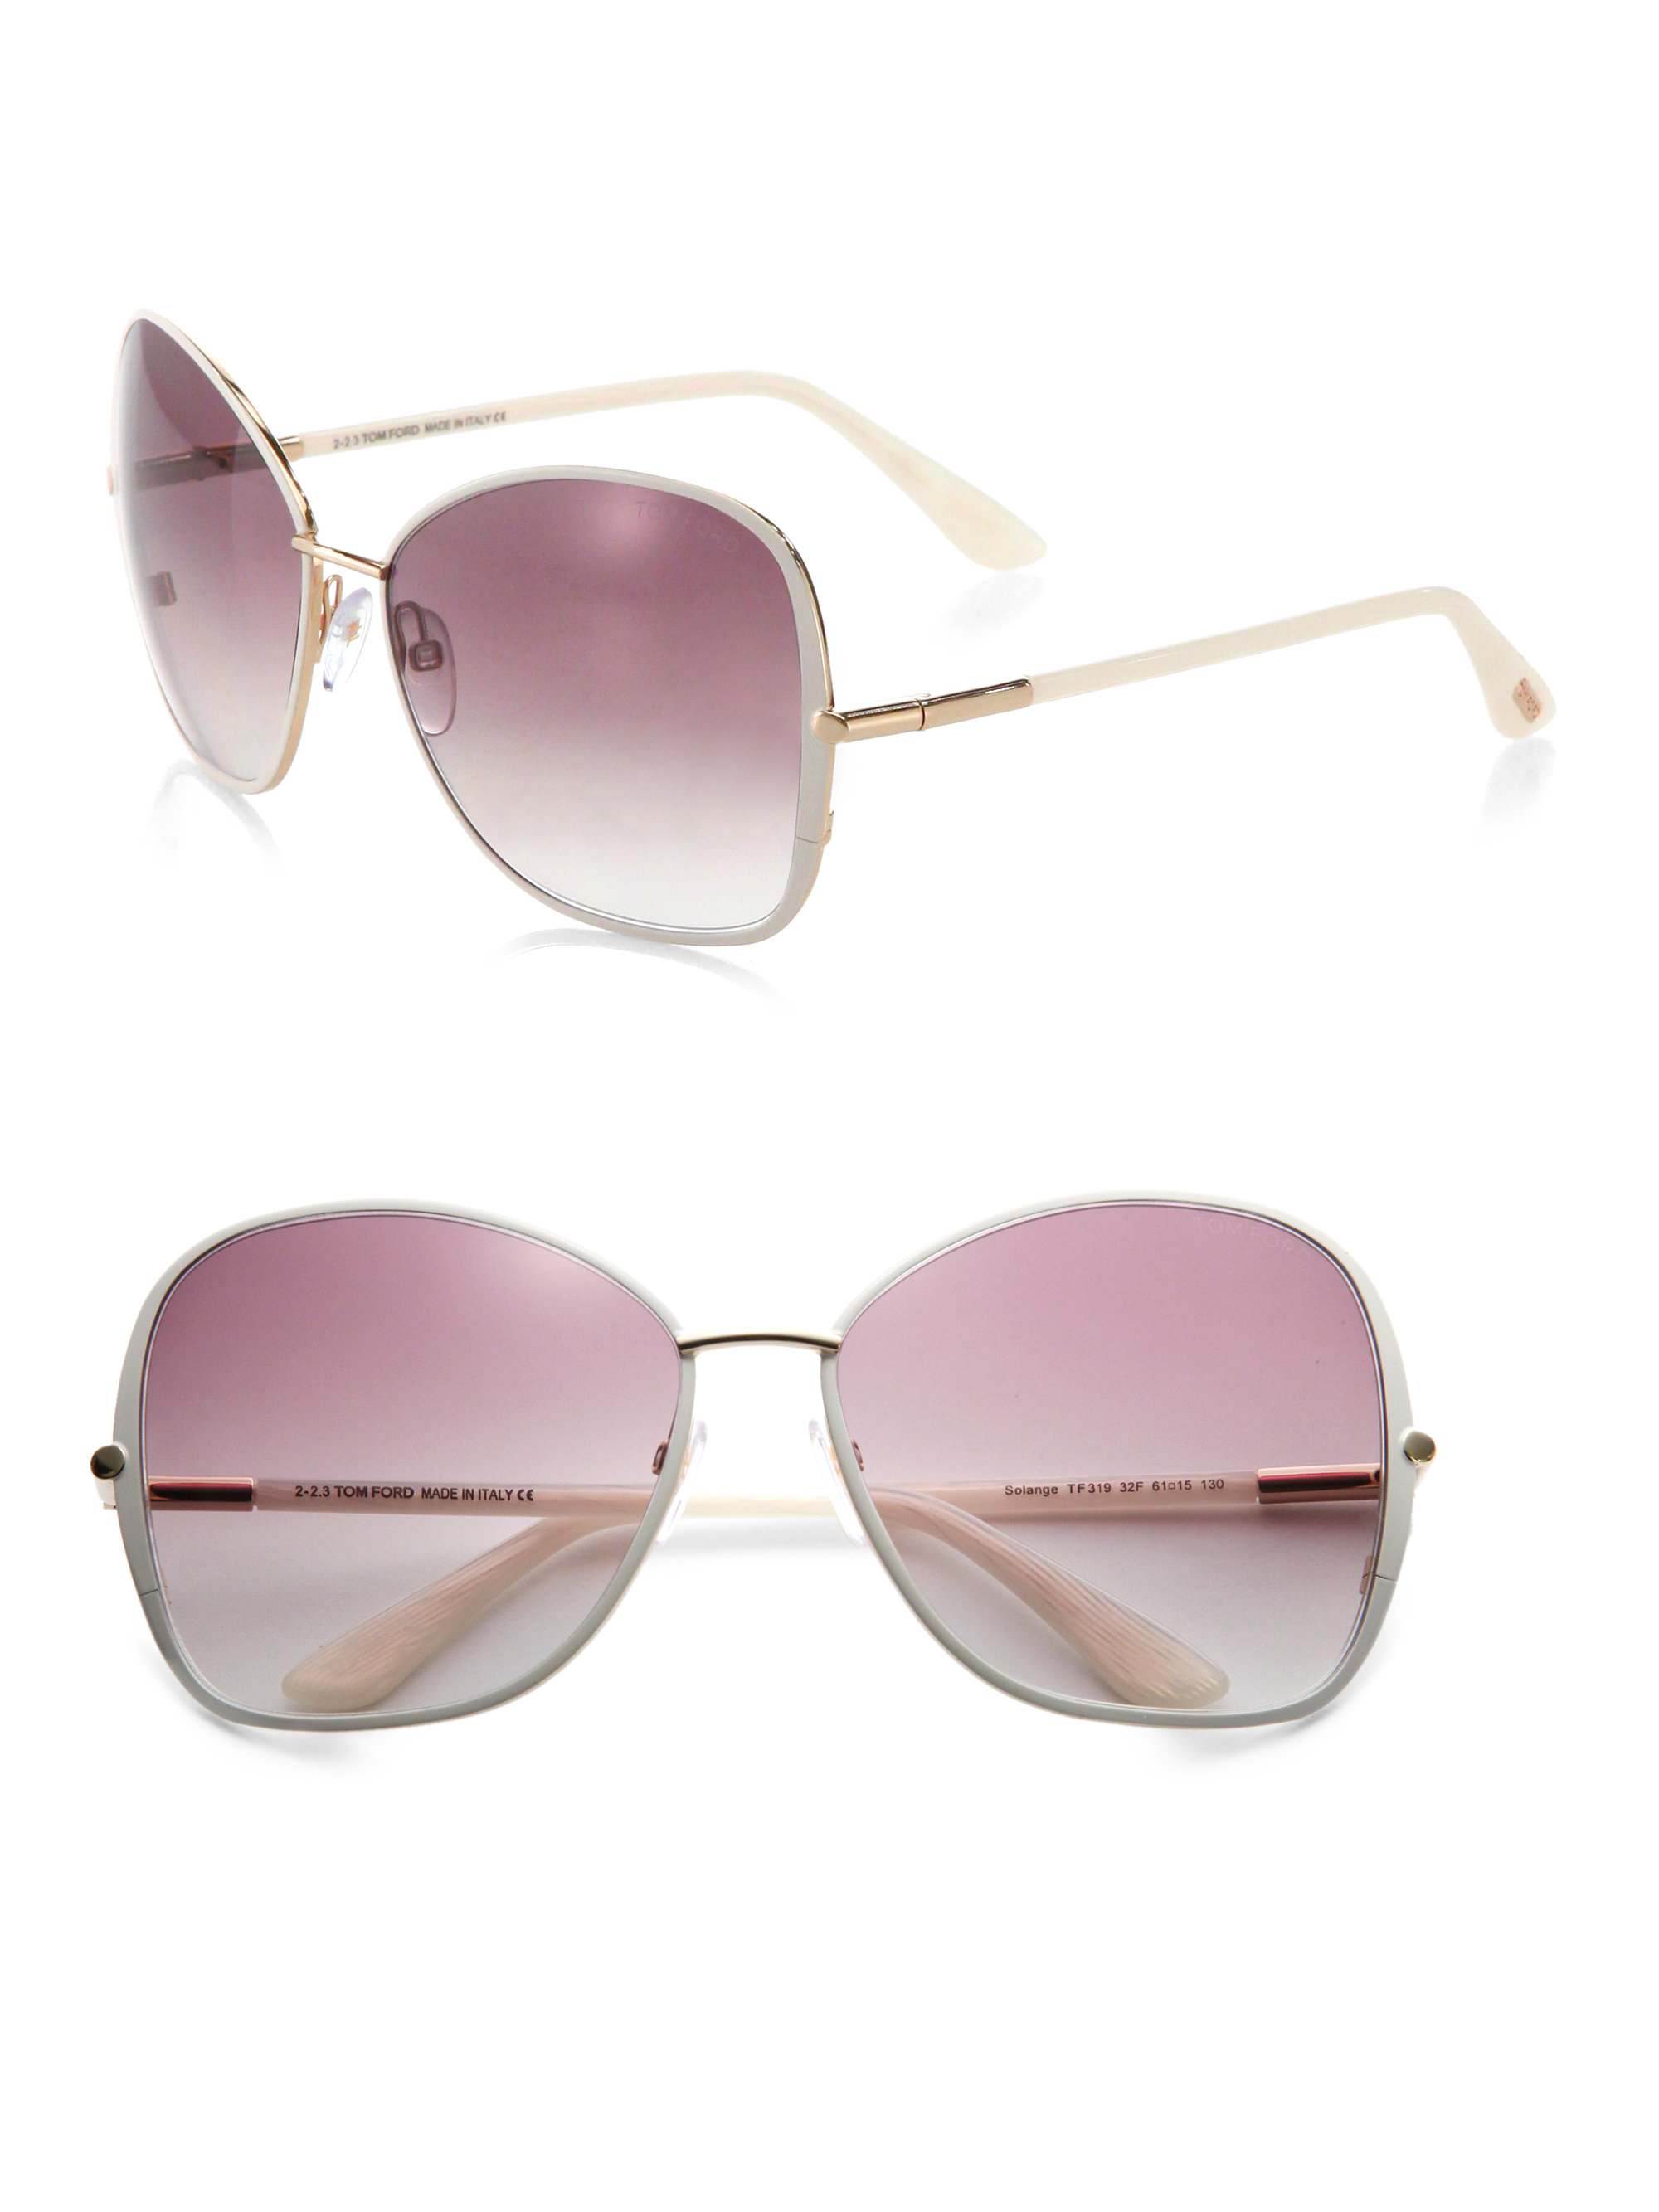 87e10340617 tom ford solange sunglasses